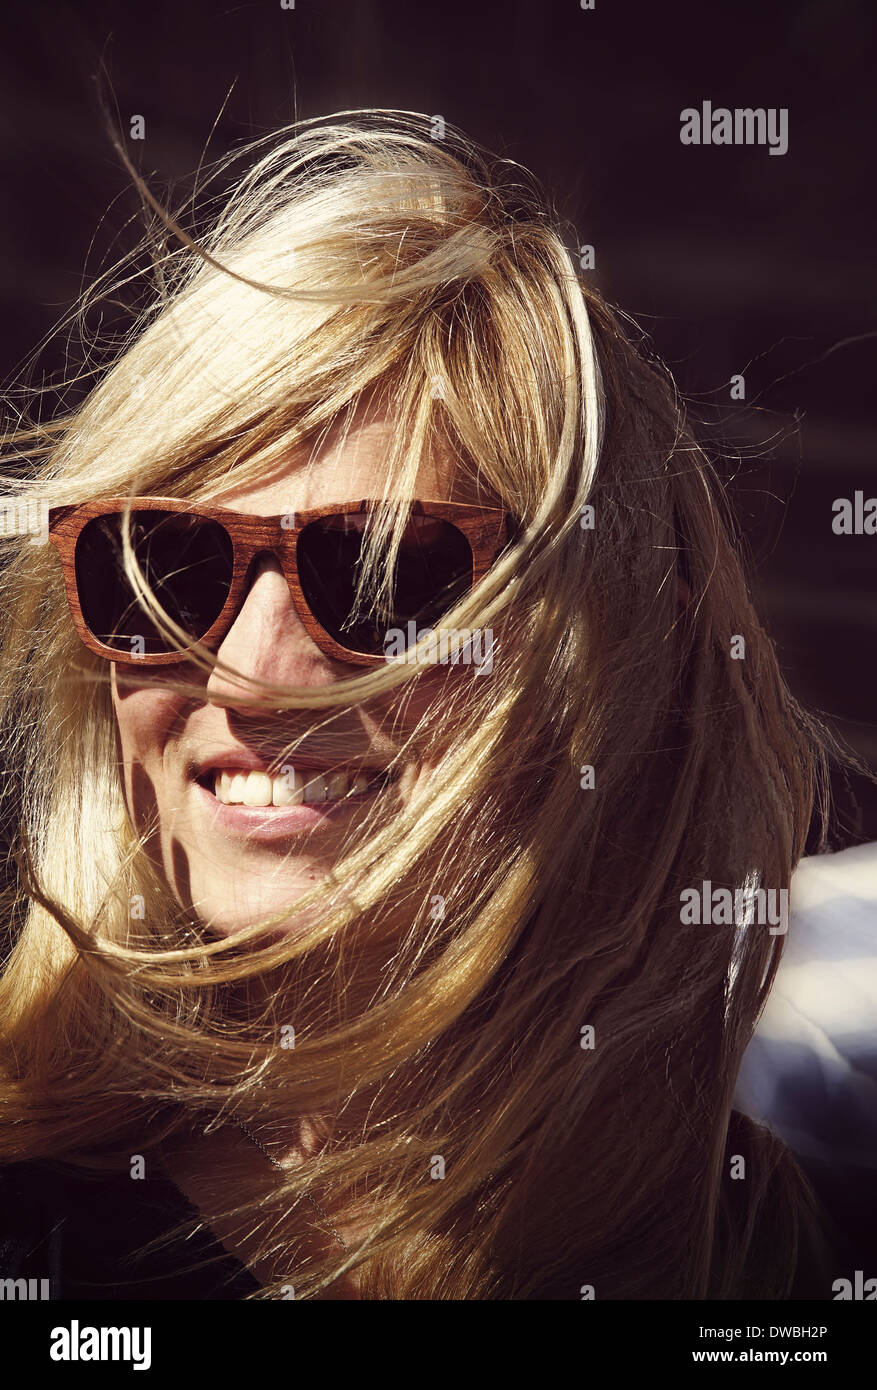 Smiling young woman with blowing hairs wearing sunglasses - Stock Image